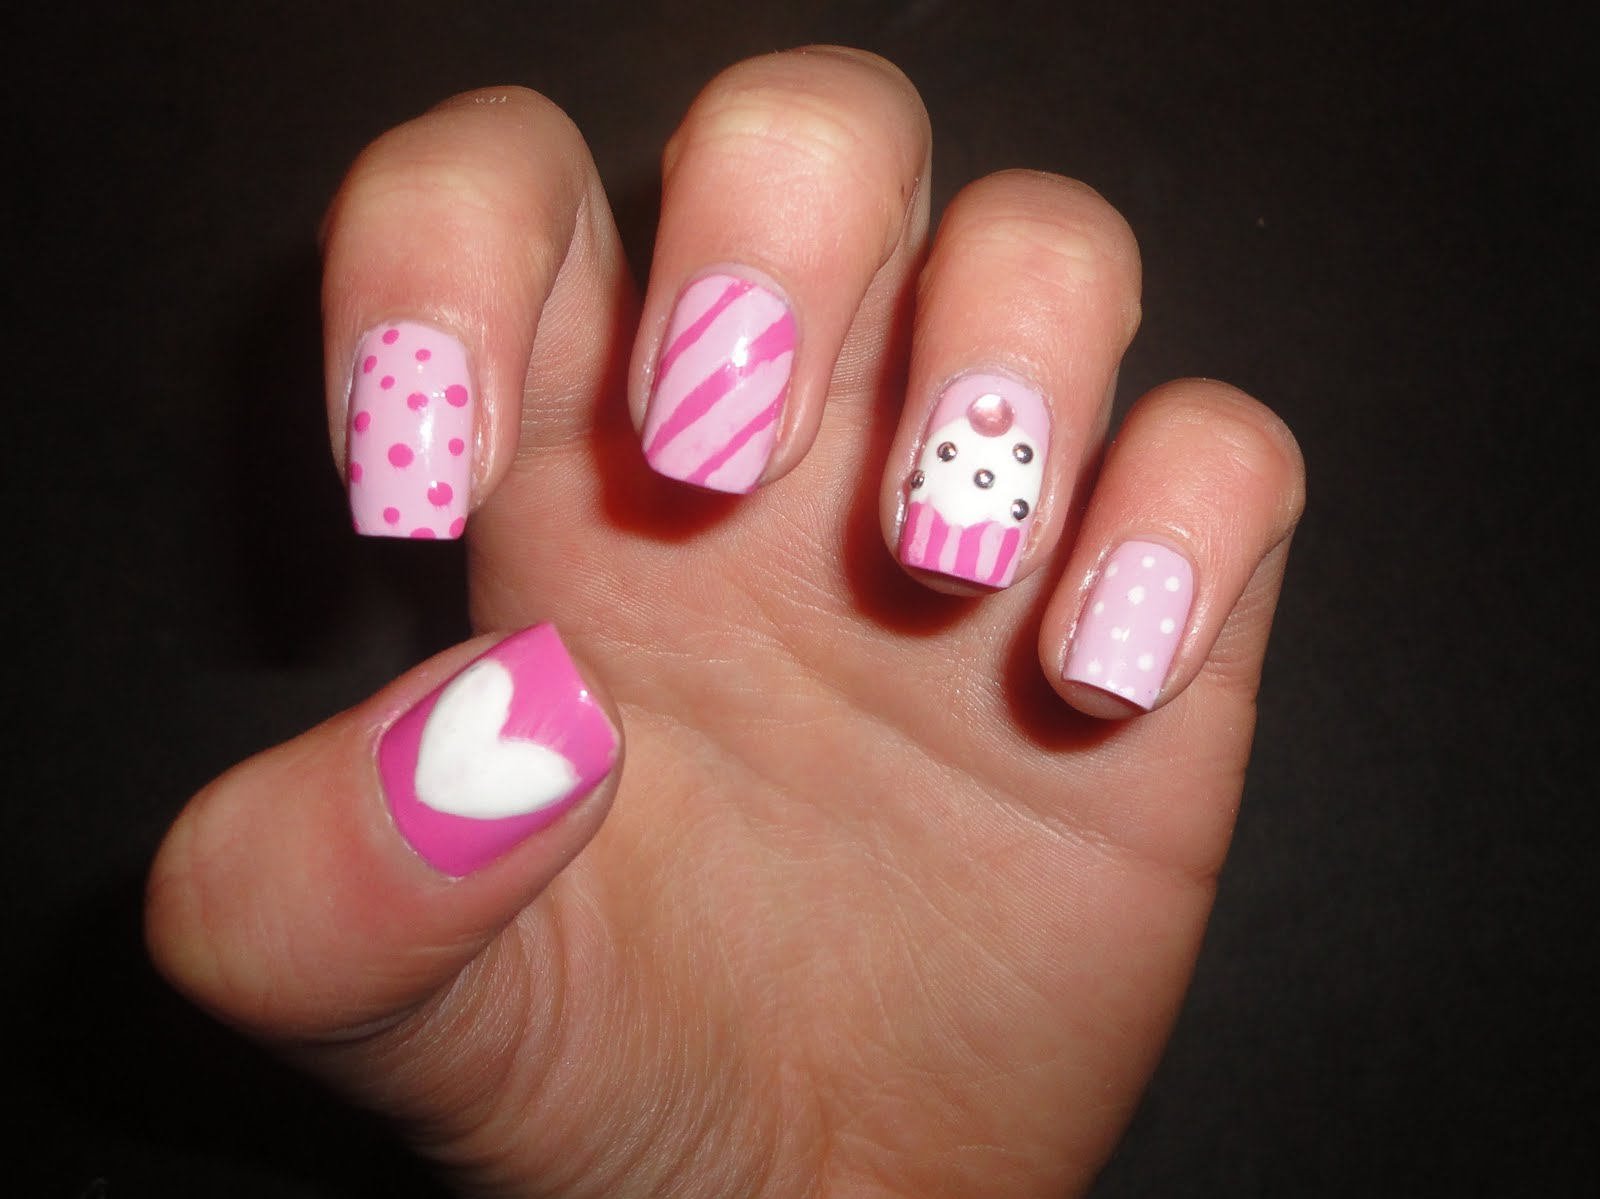 Cute Nail Designs You Will Definitely Love